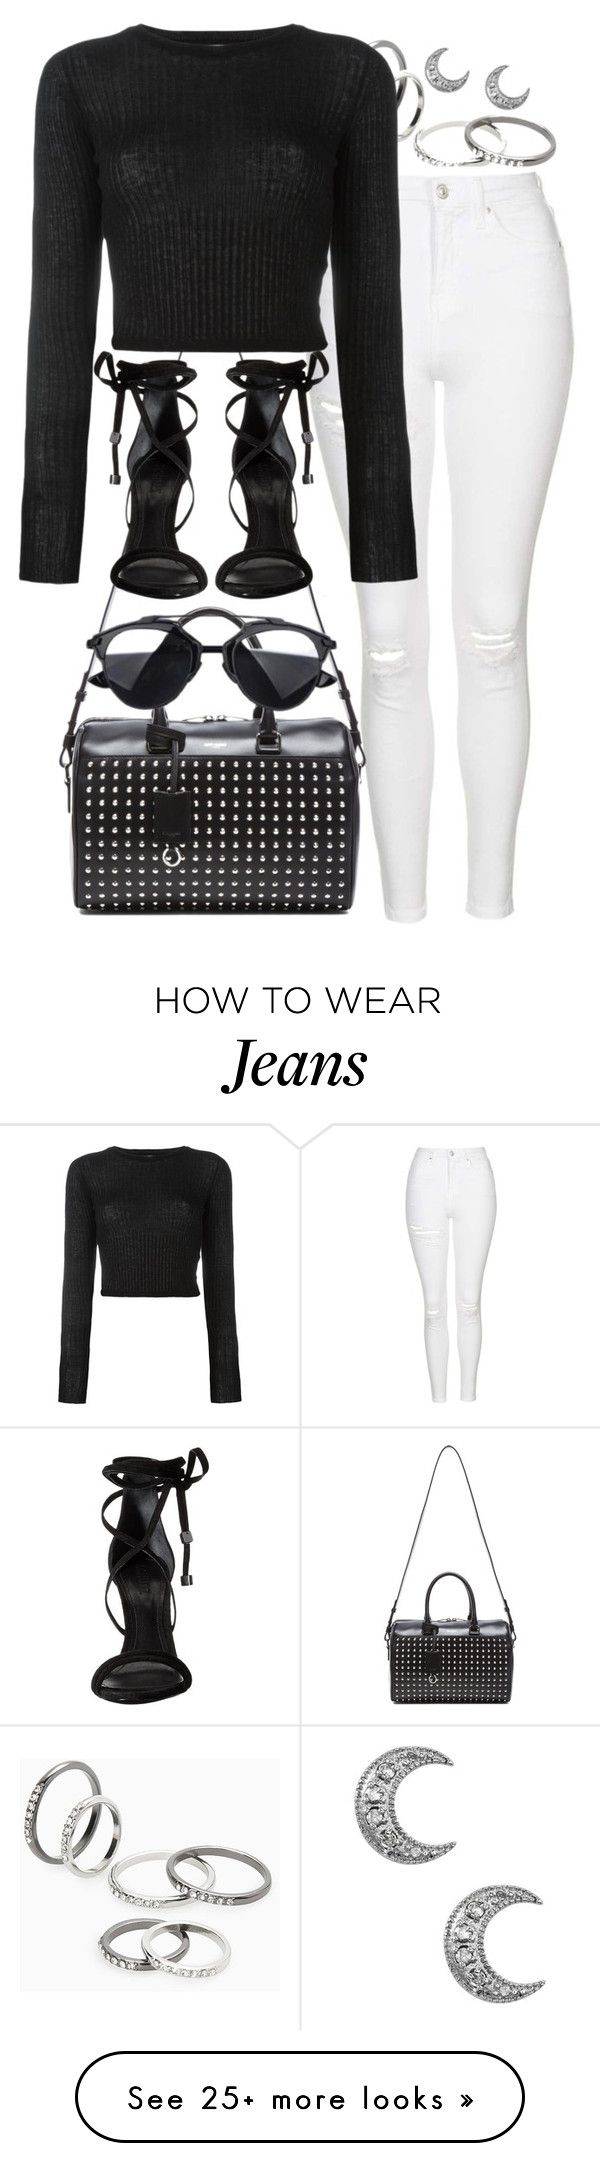 """monochromatic"" by sophiasstyle on Polyvore featuring MANGO, Topshop, Yves Saint Laurent, Forte Forte, Schutz and monochrome"